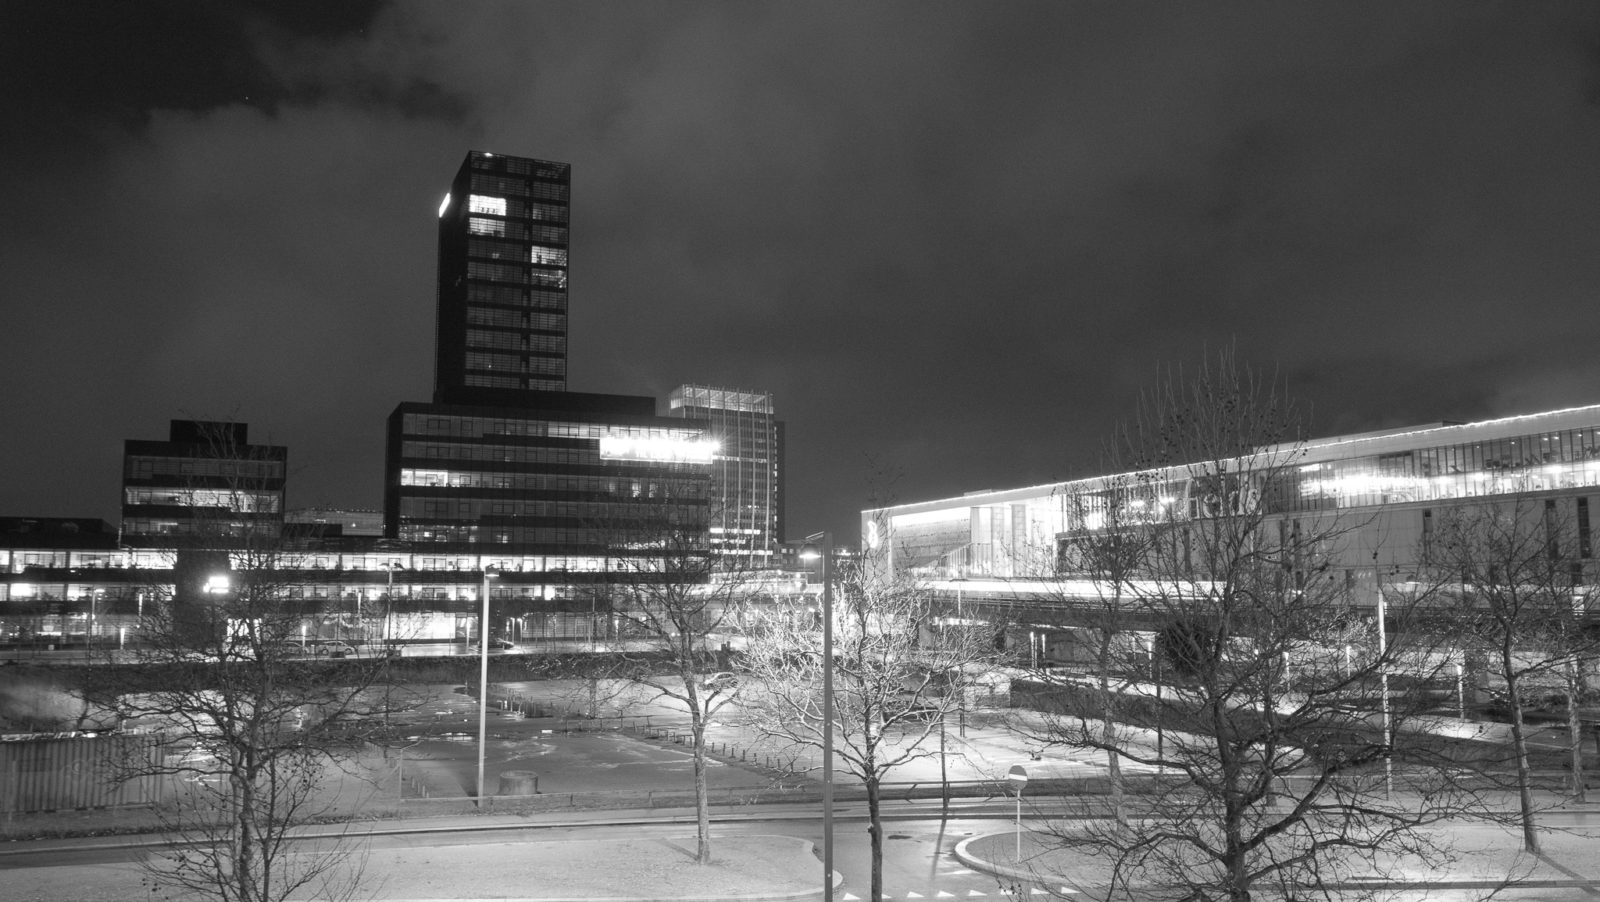 The Ferring high-rise and Fields - the desolate city center in Ørestad